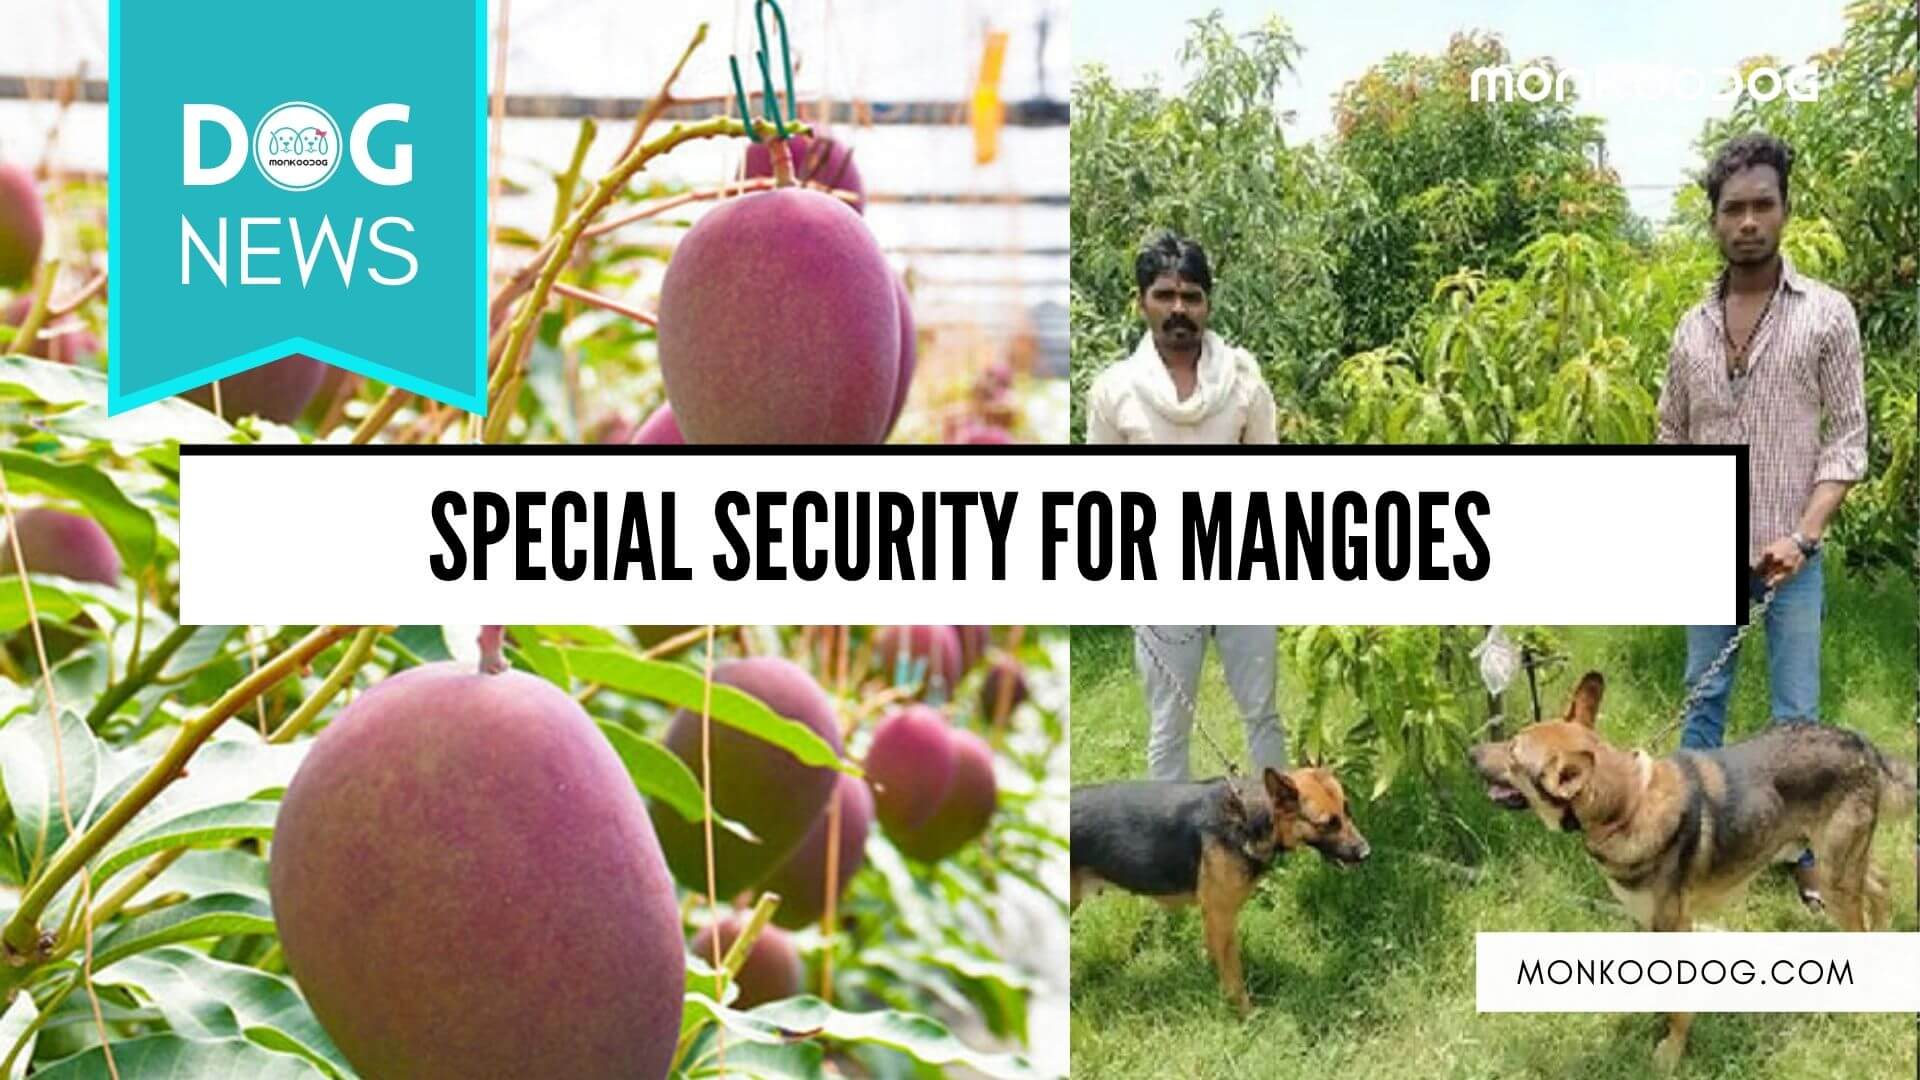 The couple deploys an army of guards and dogs to protect the rare Miyazaki Mangoes